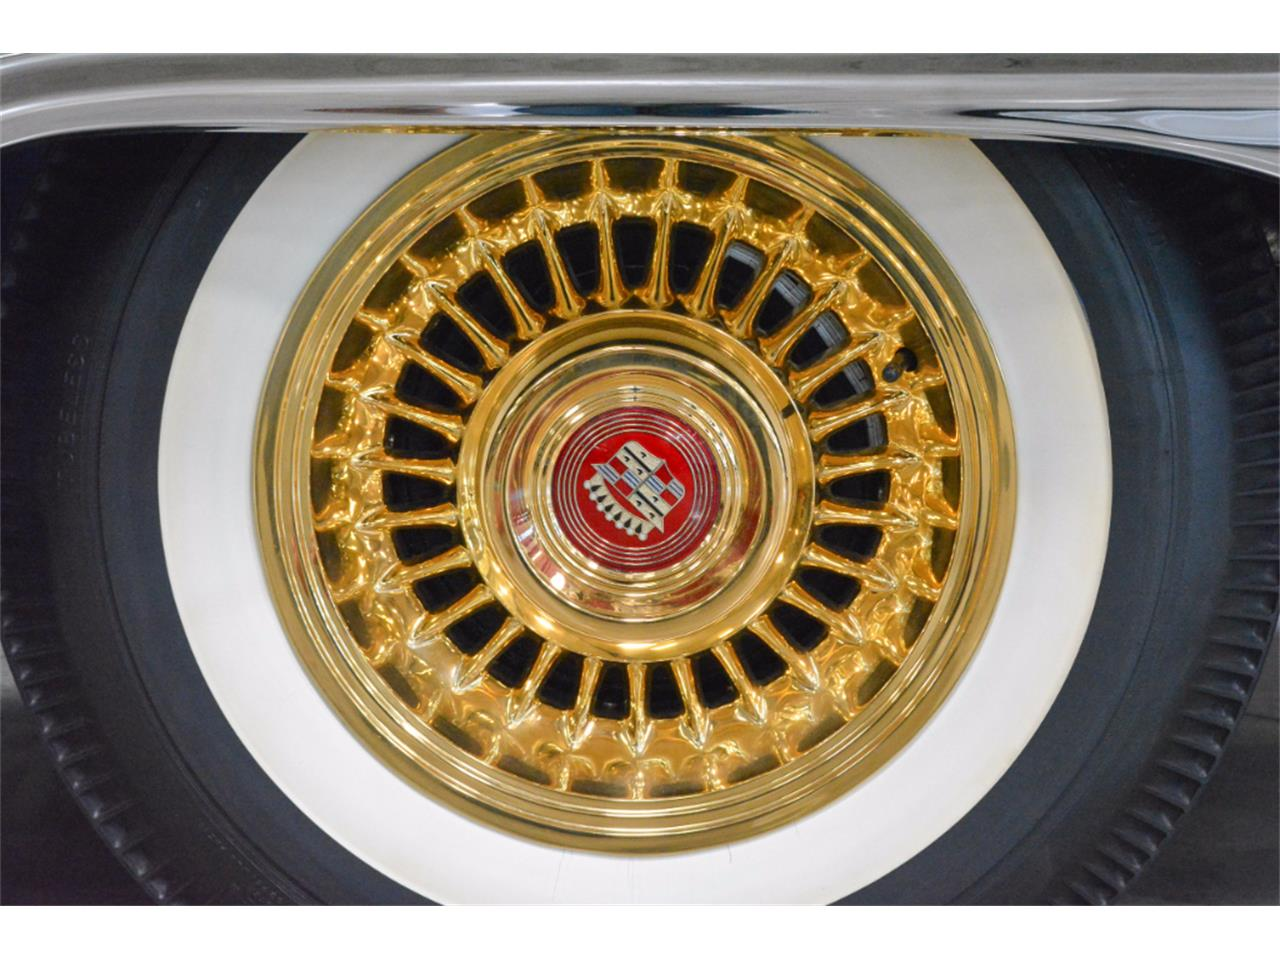 Large Picture of Classic 1957 Cadillac Eldorado Offered by John Kufleitner's Galleria - LKLZ